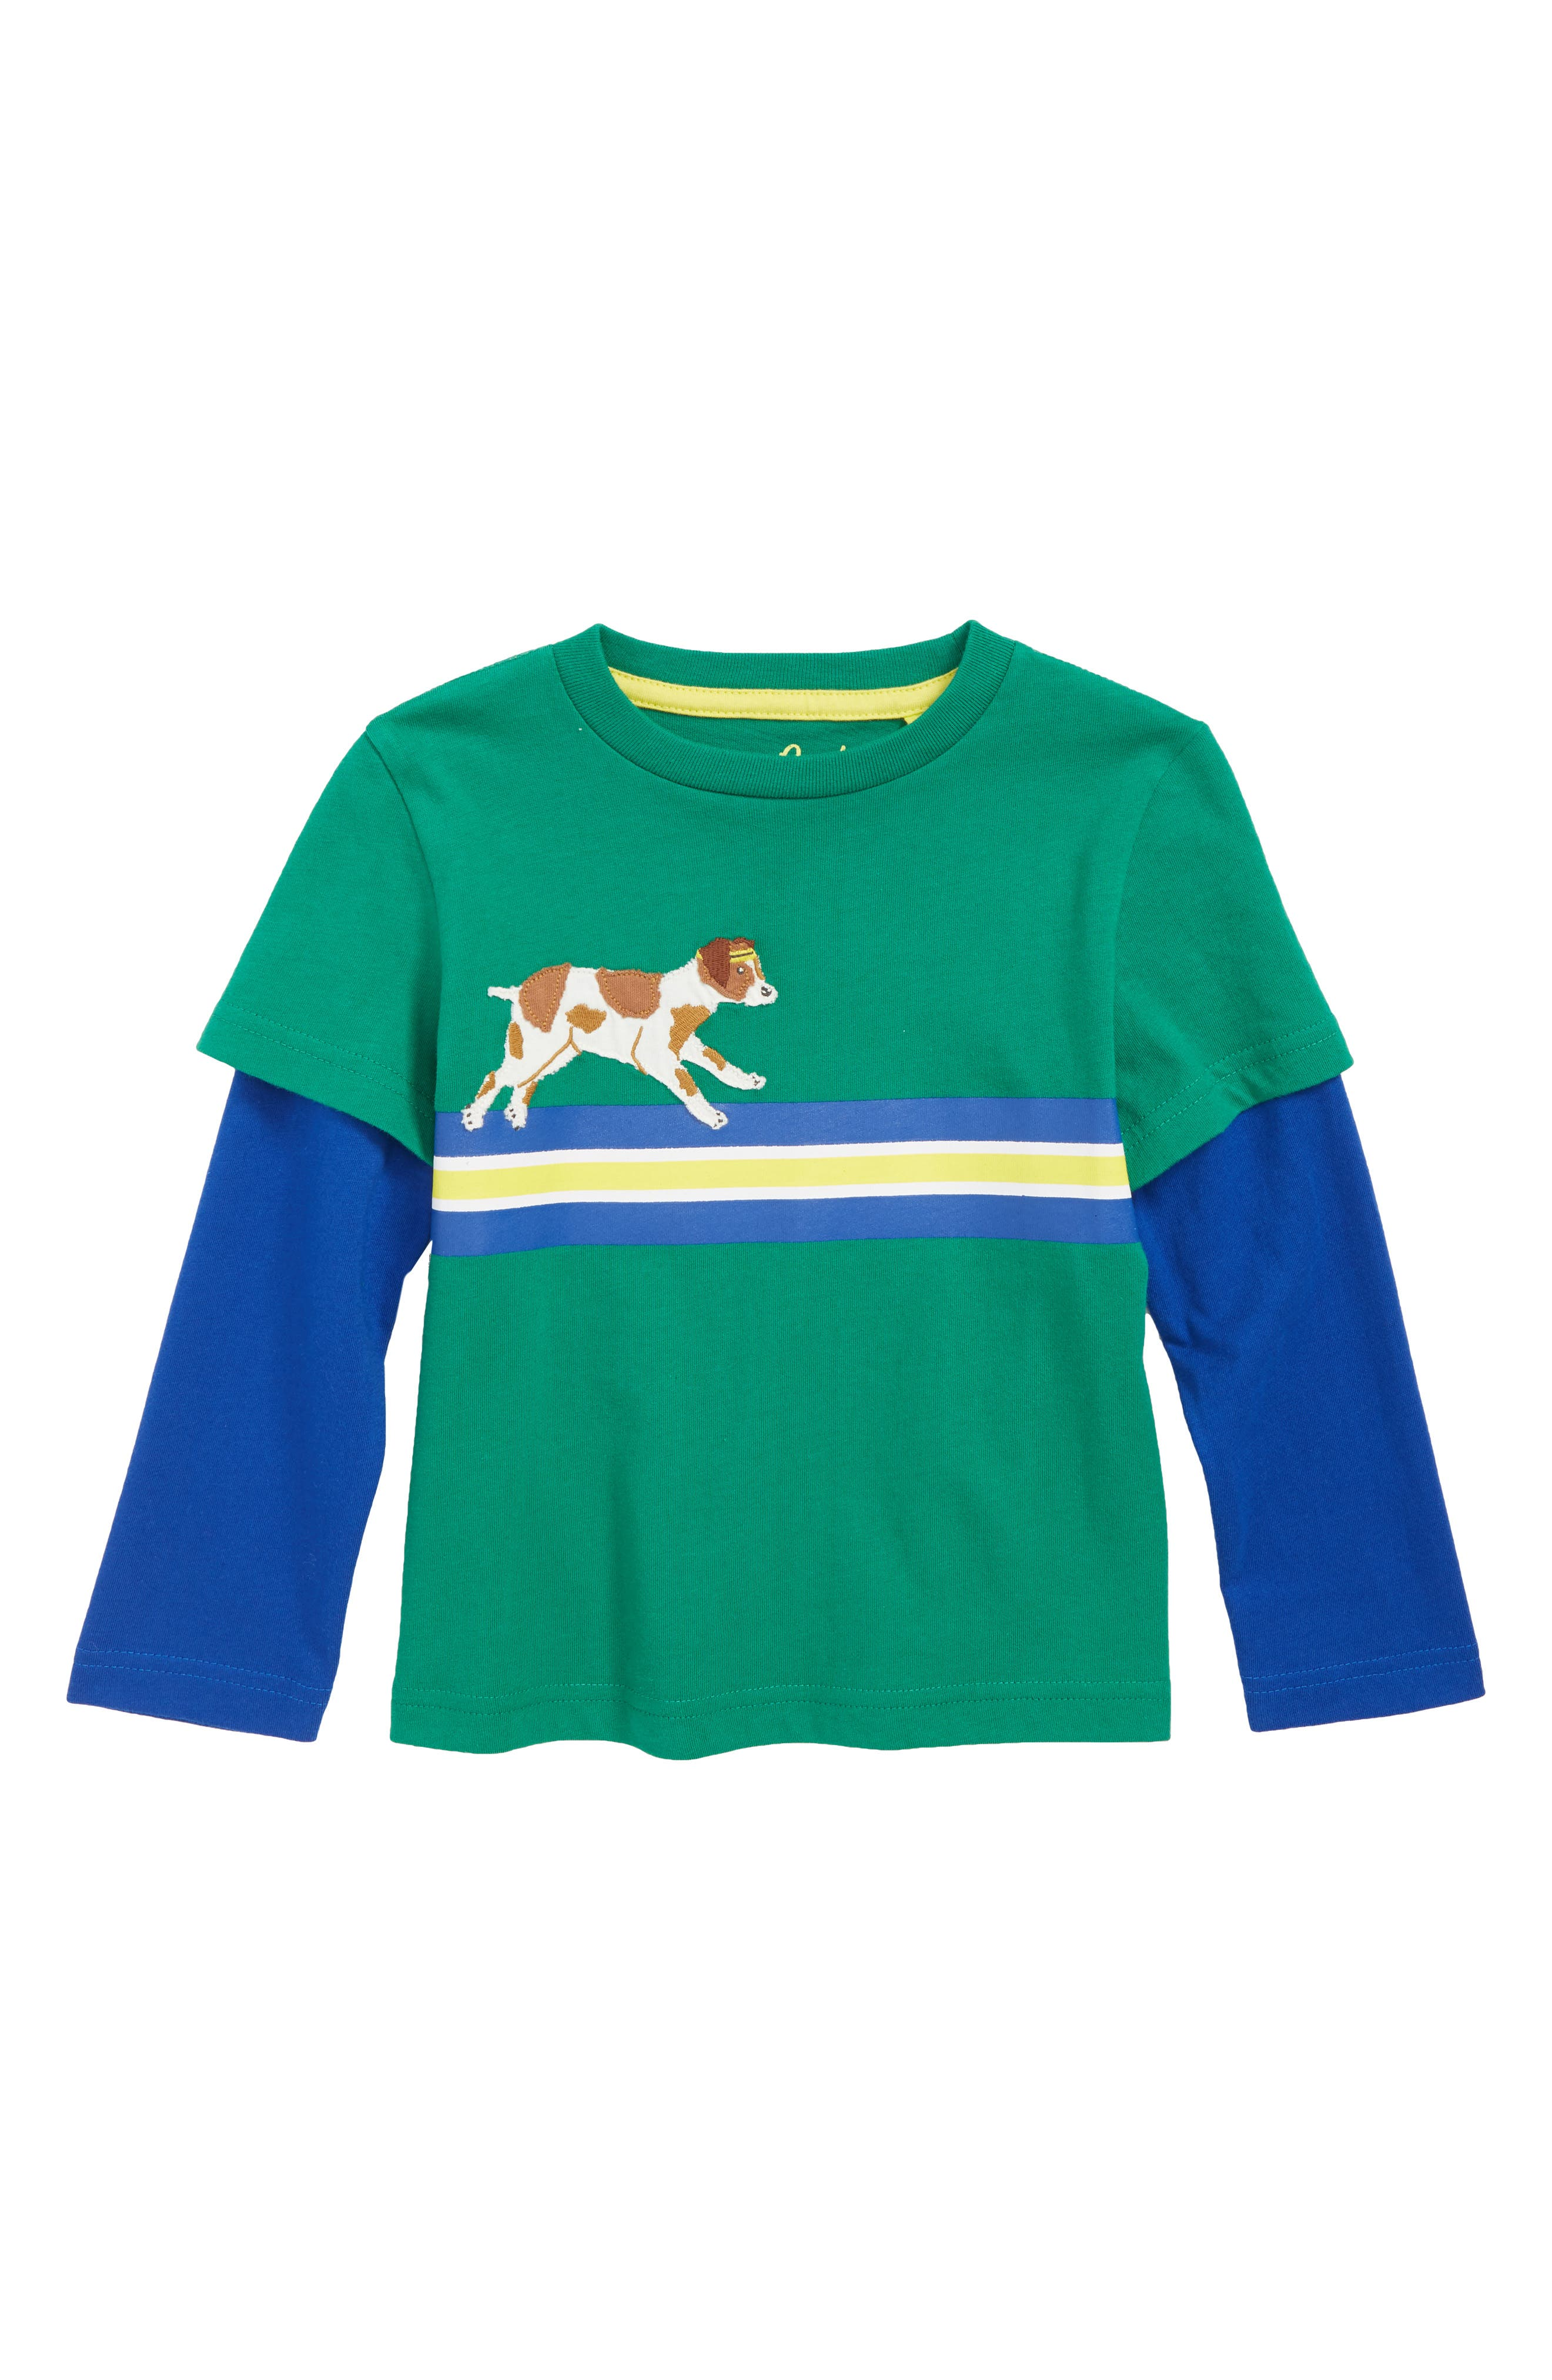 Active Animals Layered T-Shirt,                             Main thumbnail 1, color,                             315